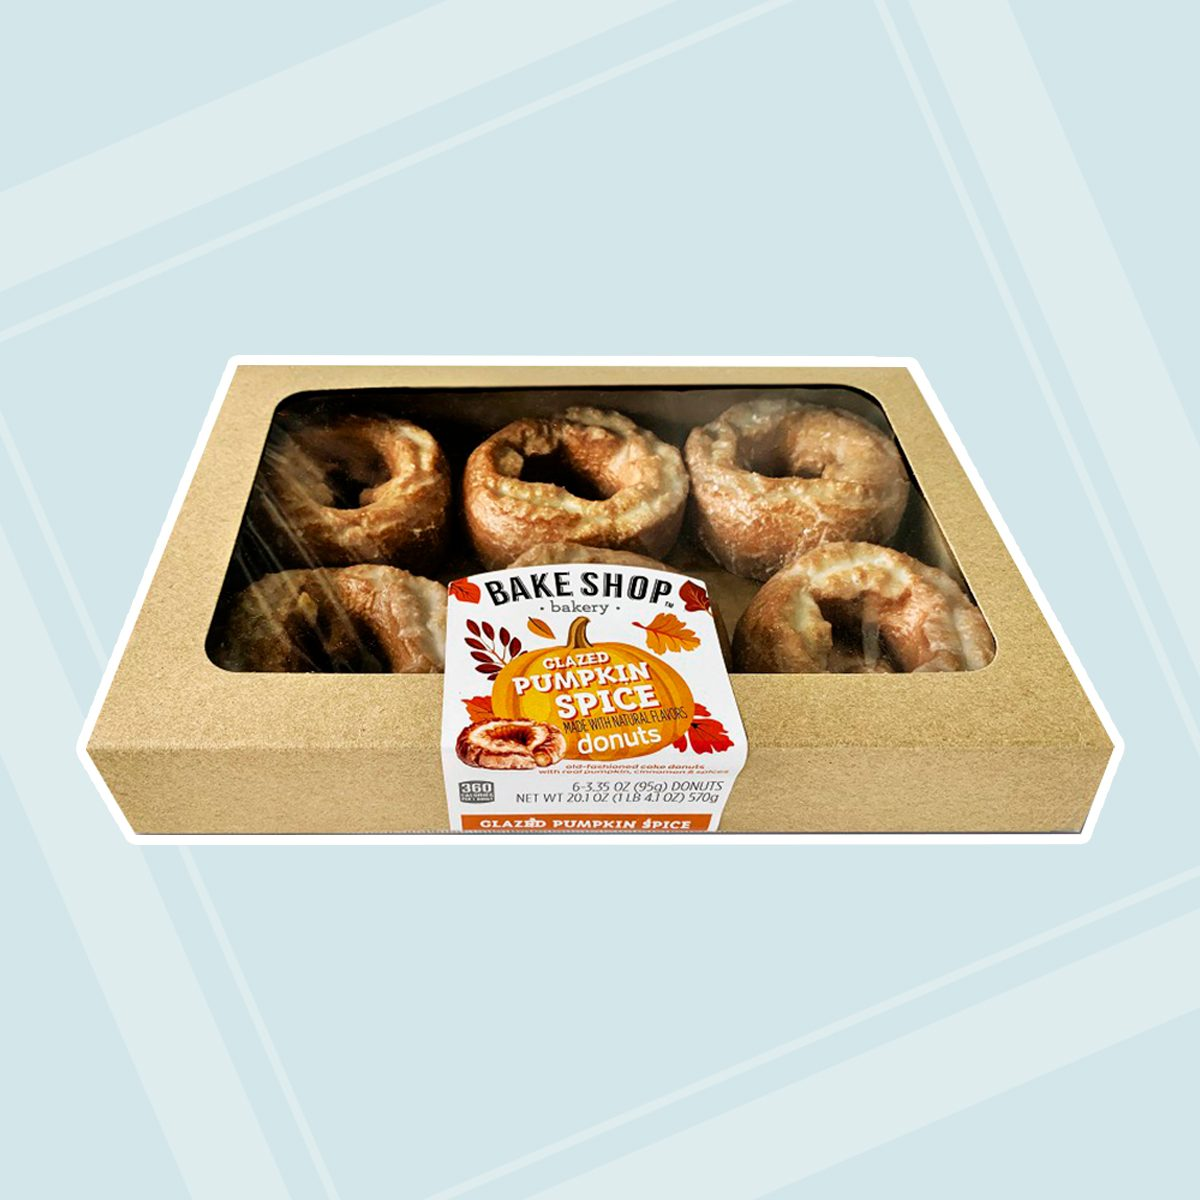 Aldi Bake Shop Pumpkin donuts